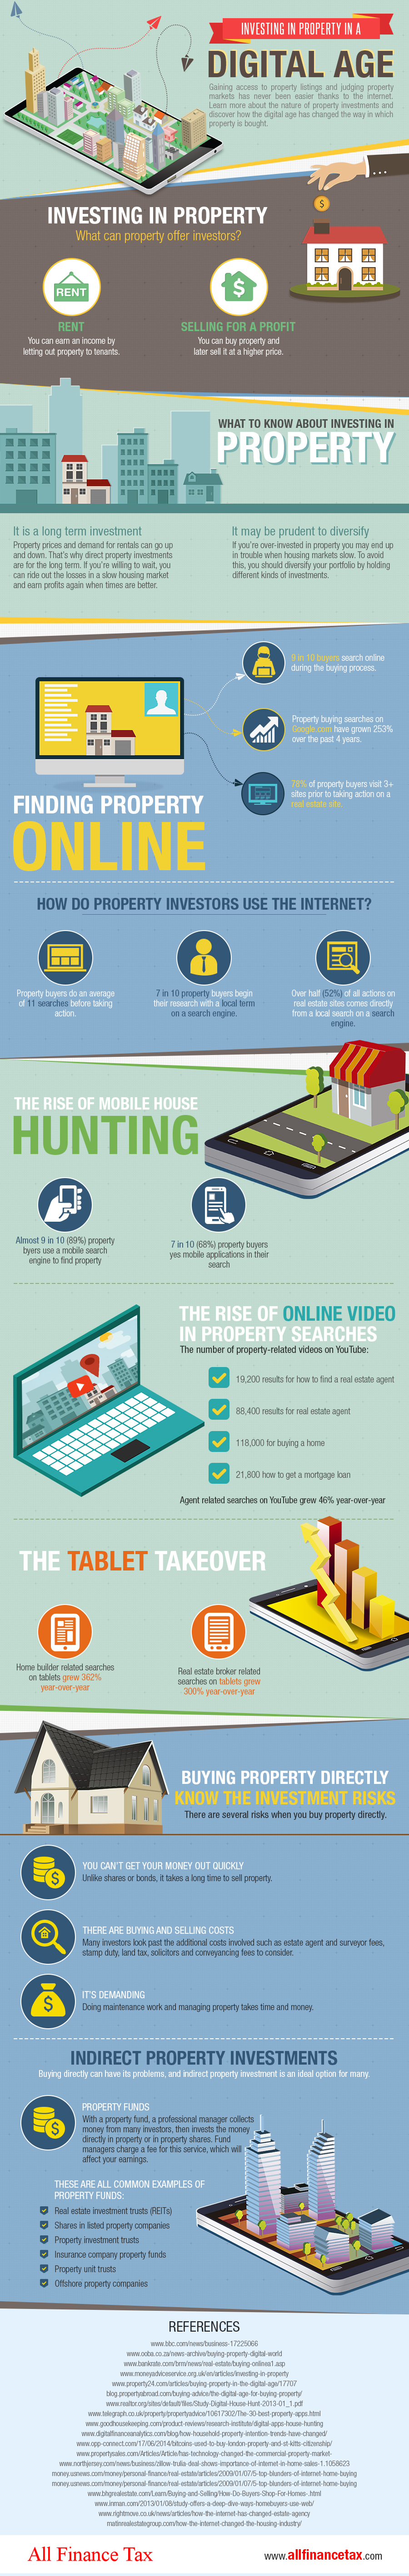 Investing-in-Property-in-a-Digital-Age-Infographic